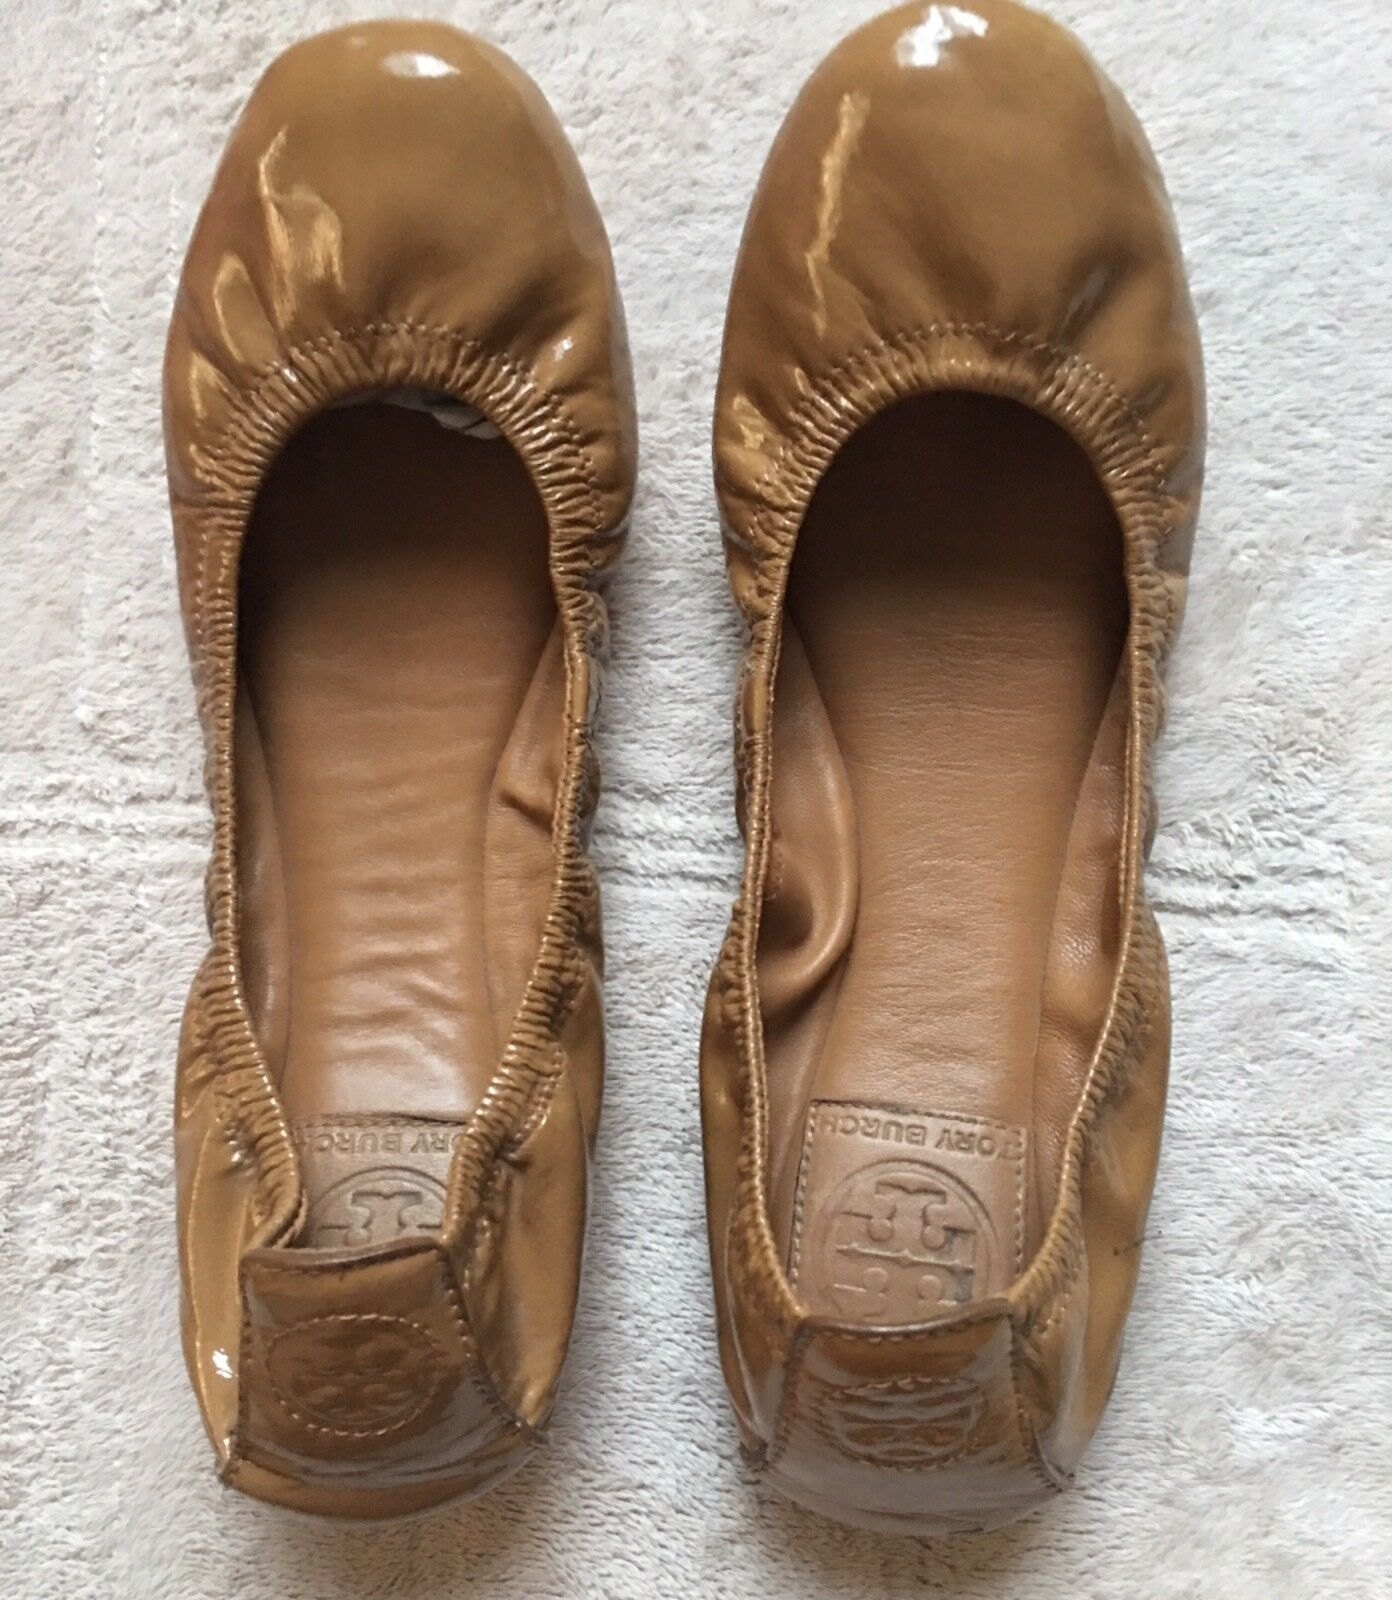 Trina Turk Women's Ballet Flat shoes, Size 6 1 2, Tan, Beige, Taupe, Curved, EUC